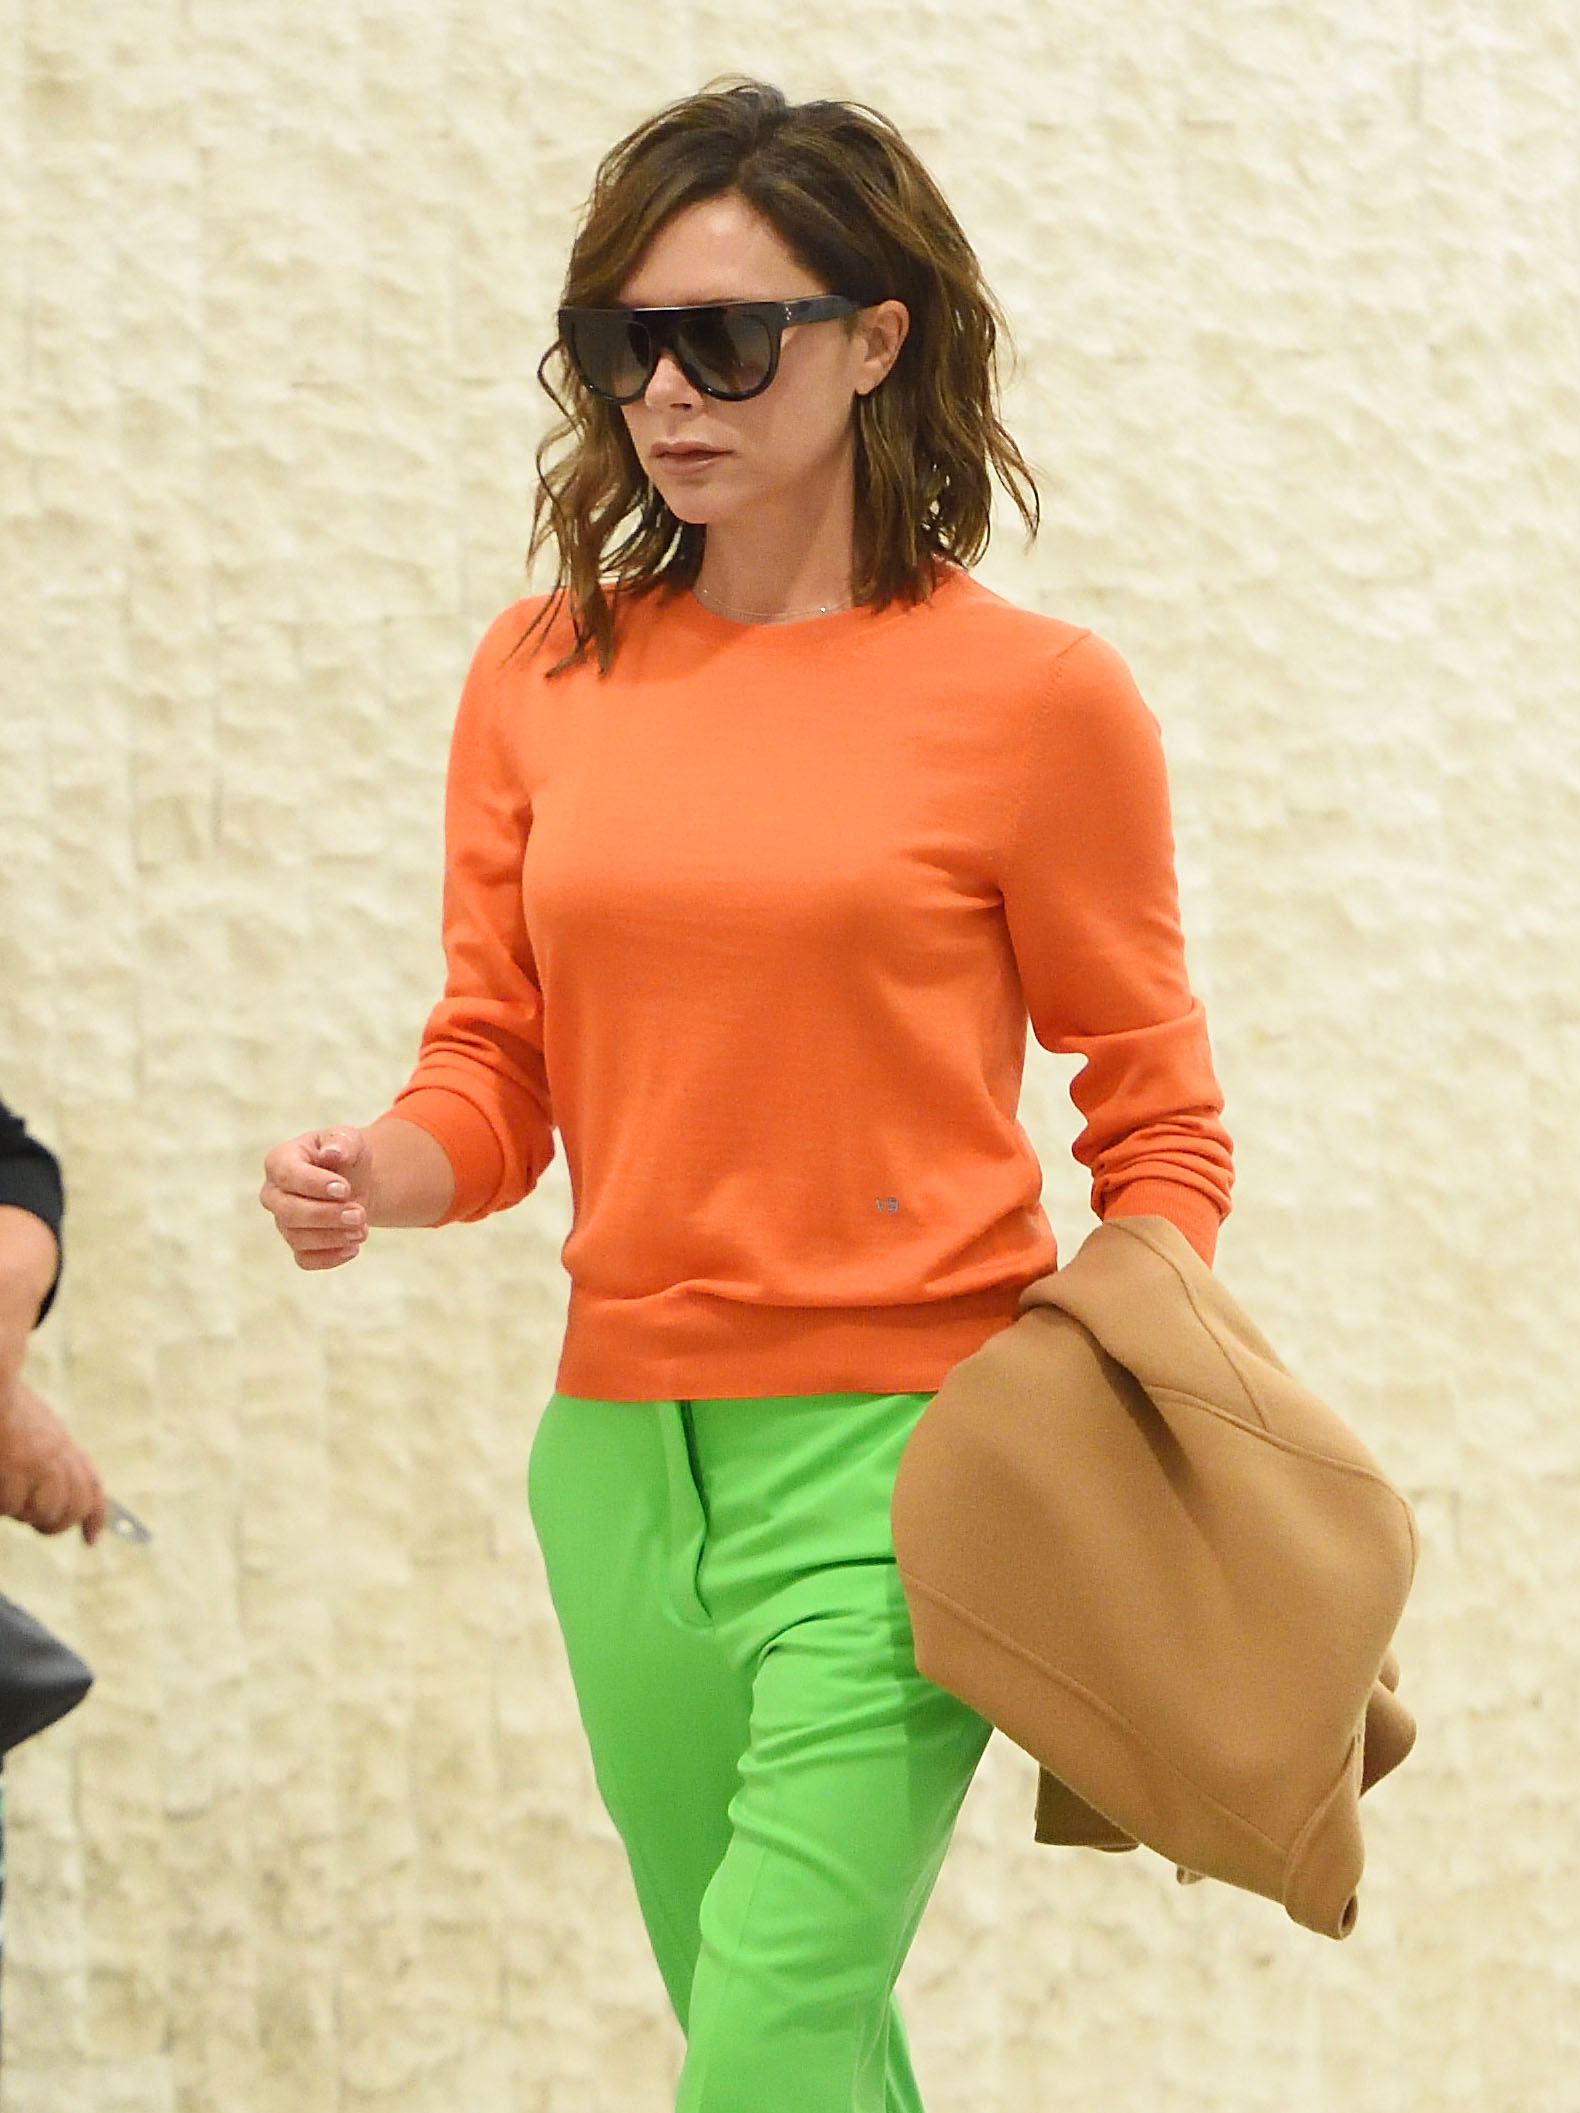 Victoria Beckham arrives at JFK airport in NYC. <P> Pictured: Victoria Beckham <B>Ref: SPL1510108  050617  </B><BR/> Picture by: Ron Asadorian / Splash News<BR/> </P><P> <B>Splash News and Pictures</B><BR/> Los Angeles:310-821-2666<BR/> New York:212-619-2666<BR/> London:870-934-2666<BR/> <span id=